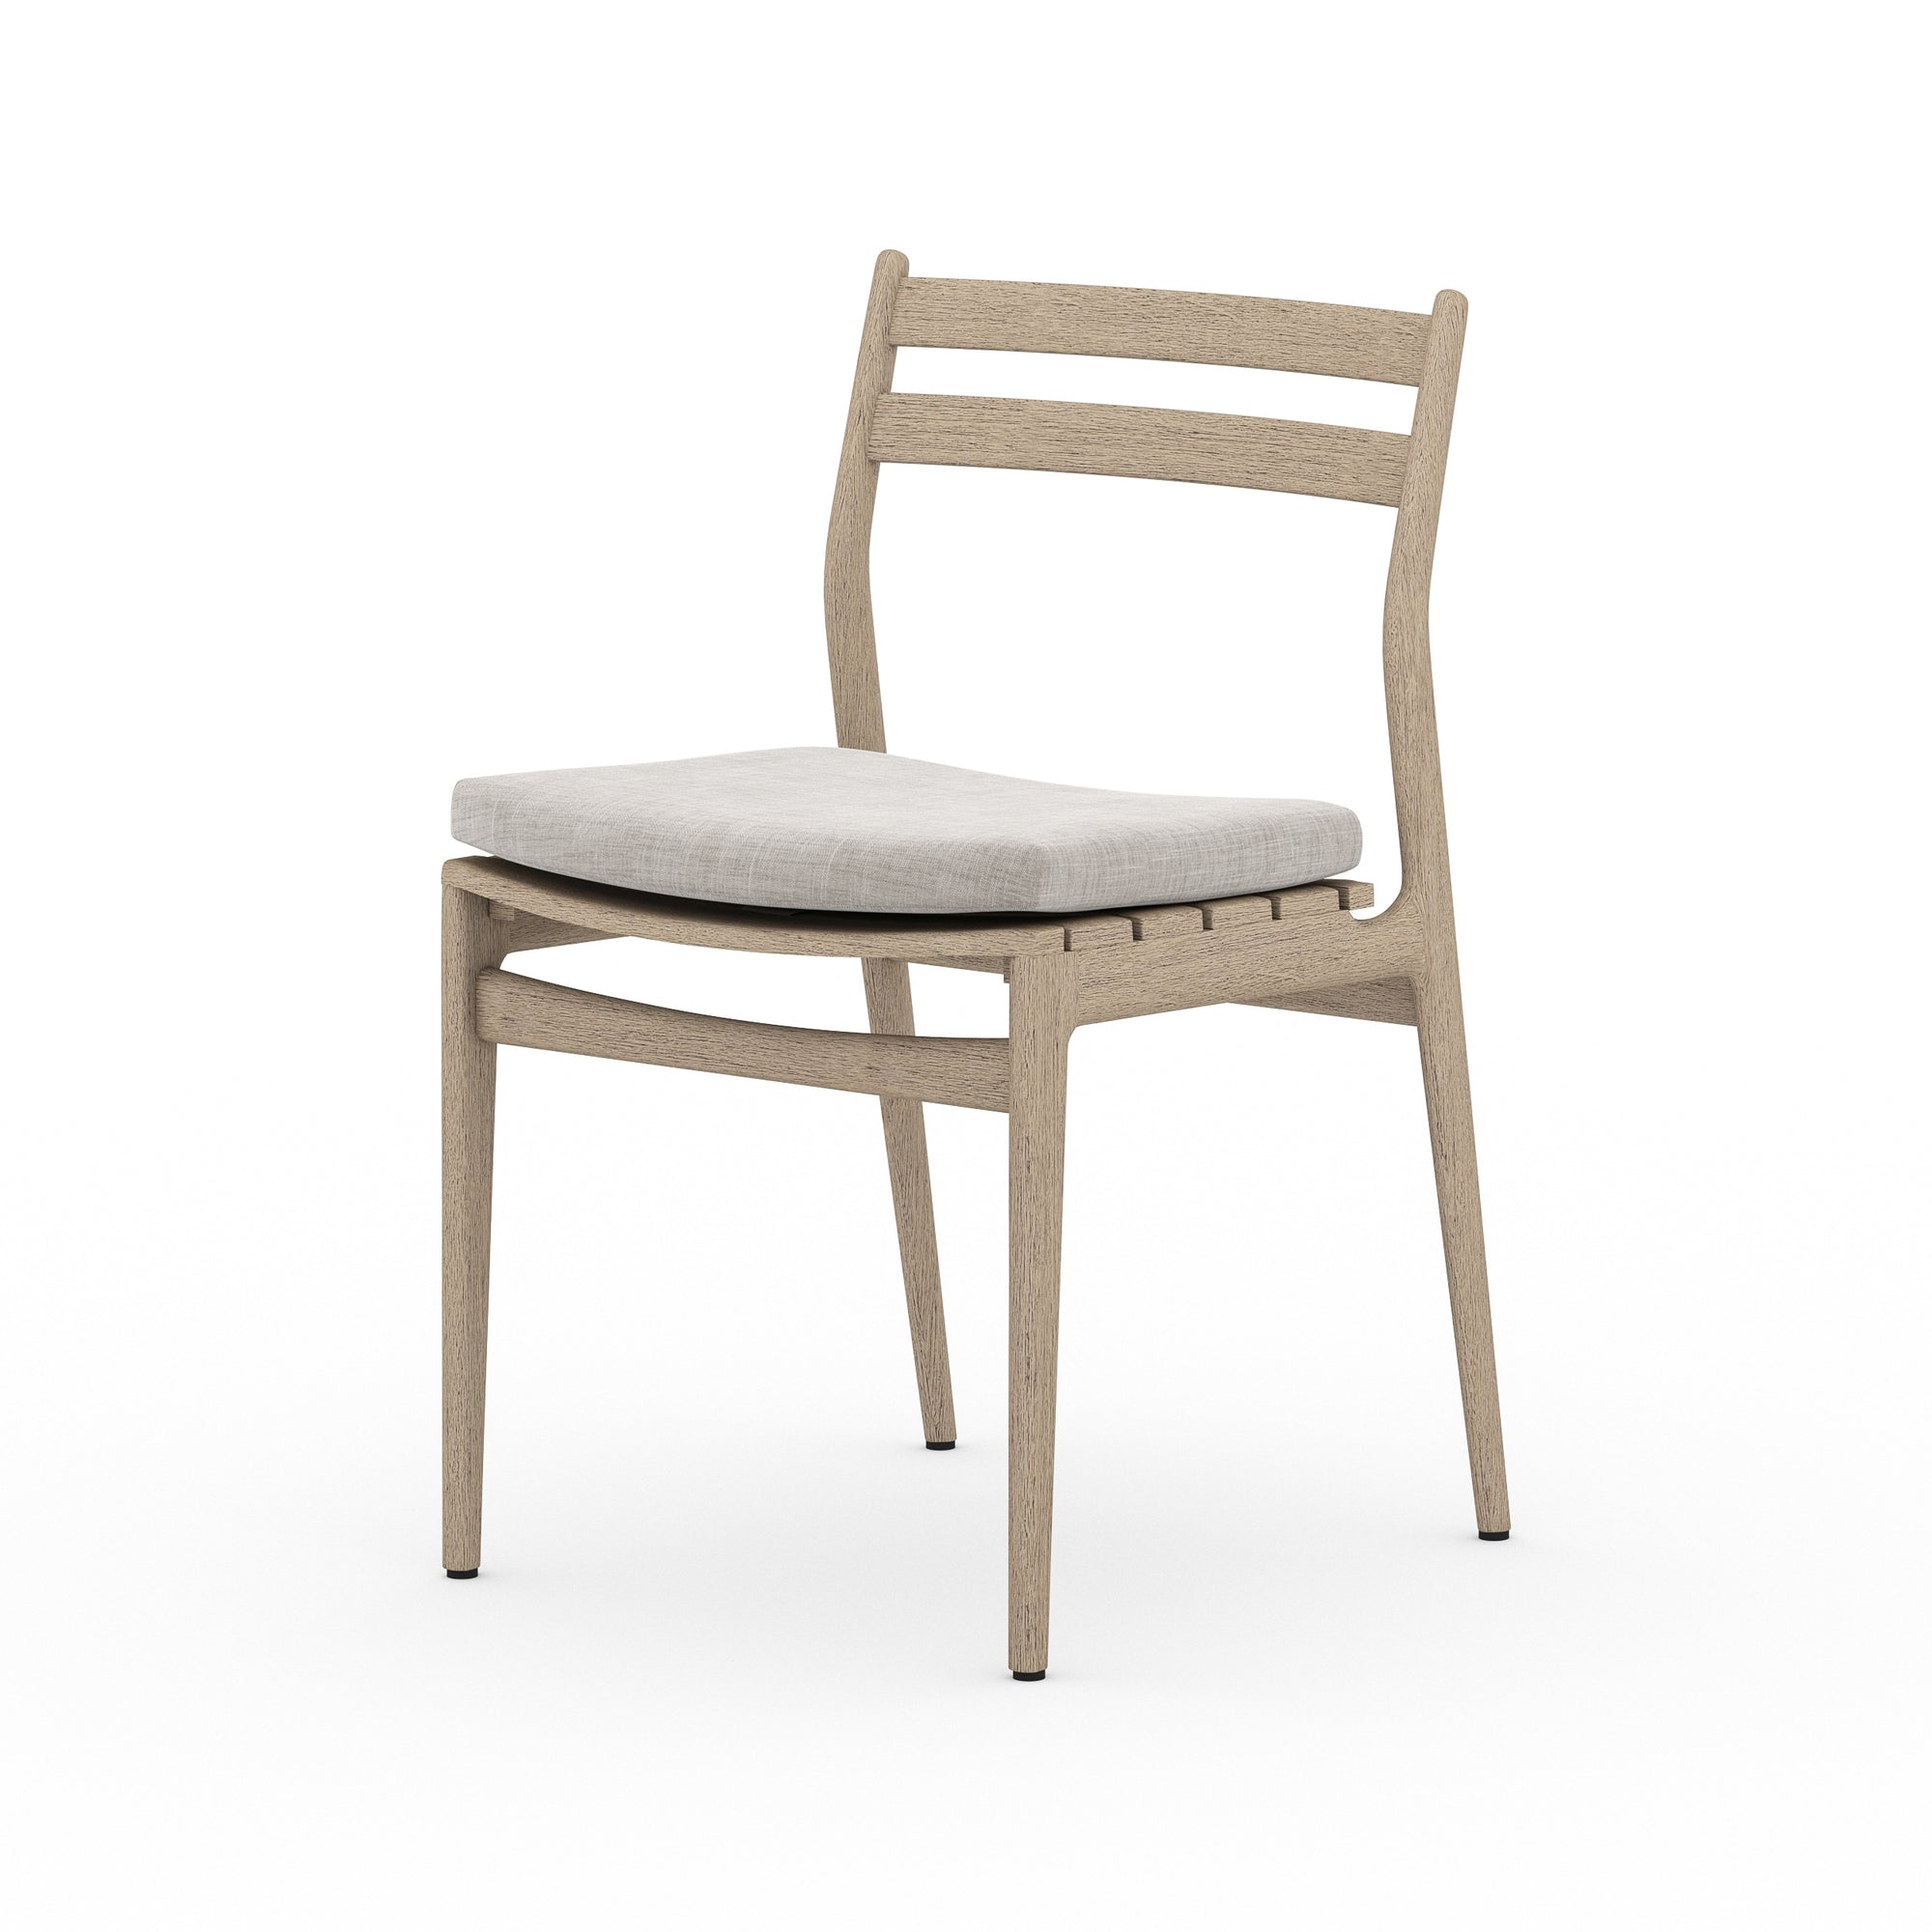 Atherton Outdoor Dining Chair - Brown/Ston